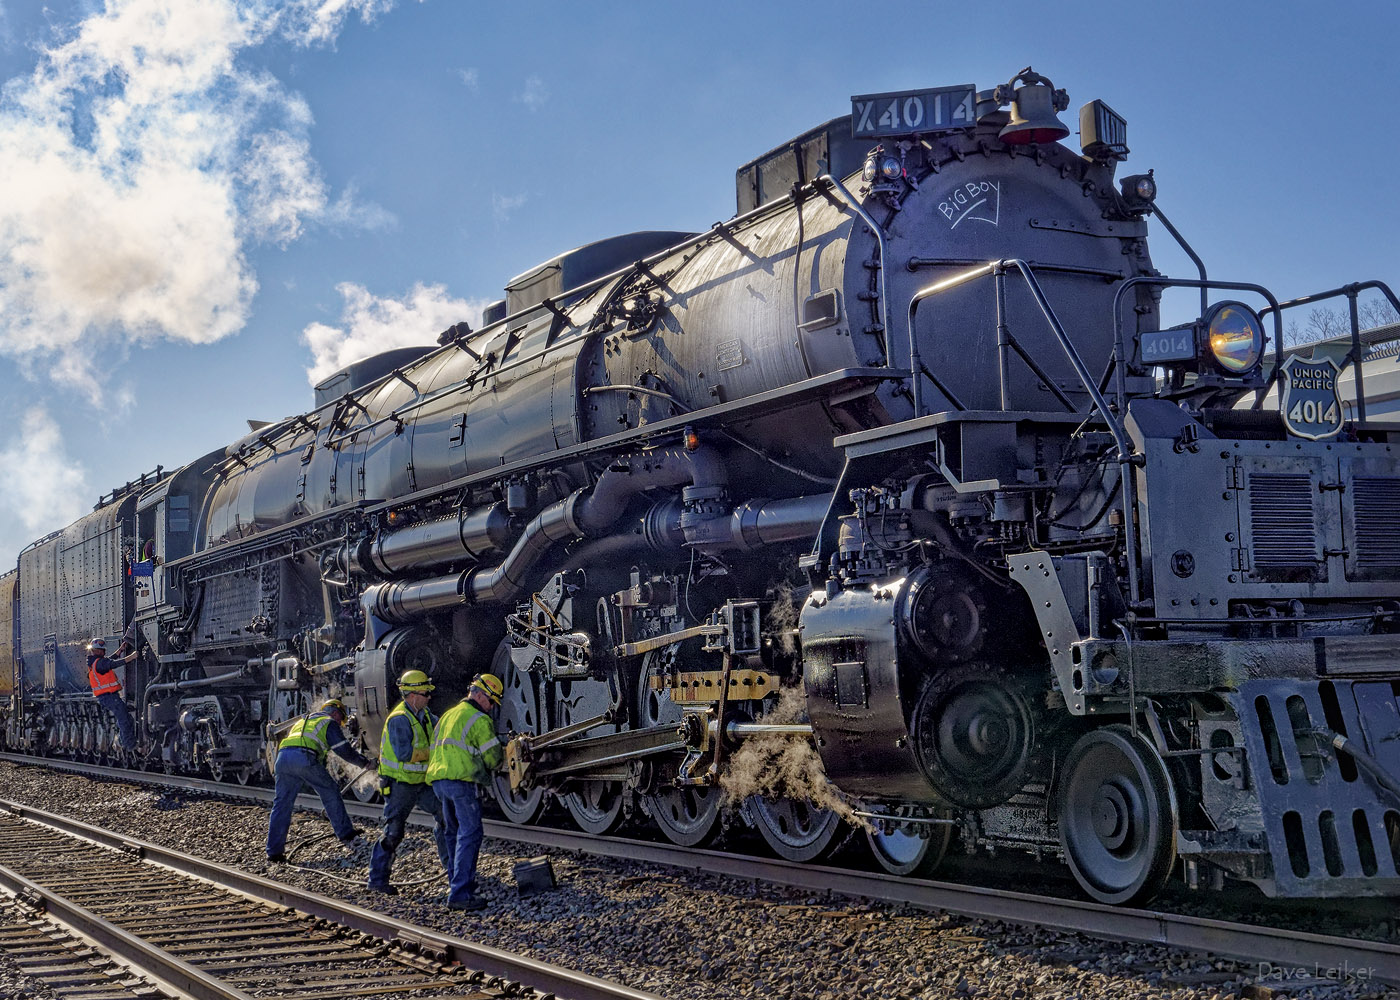 Big Boy Locomotive Maintenance Crew